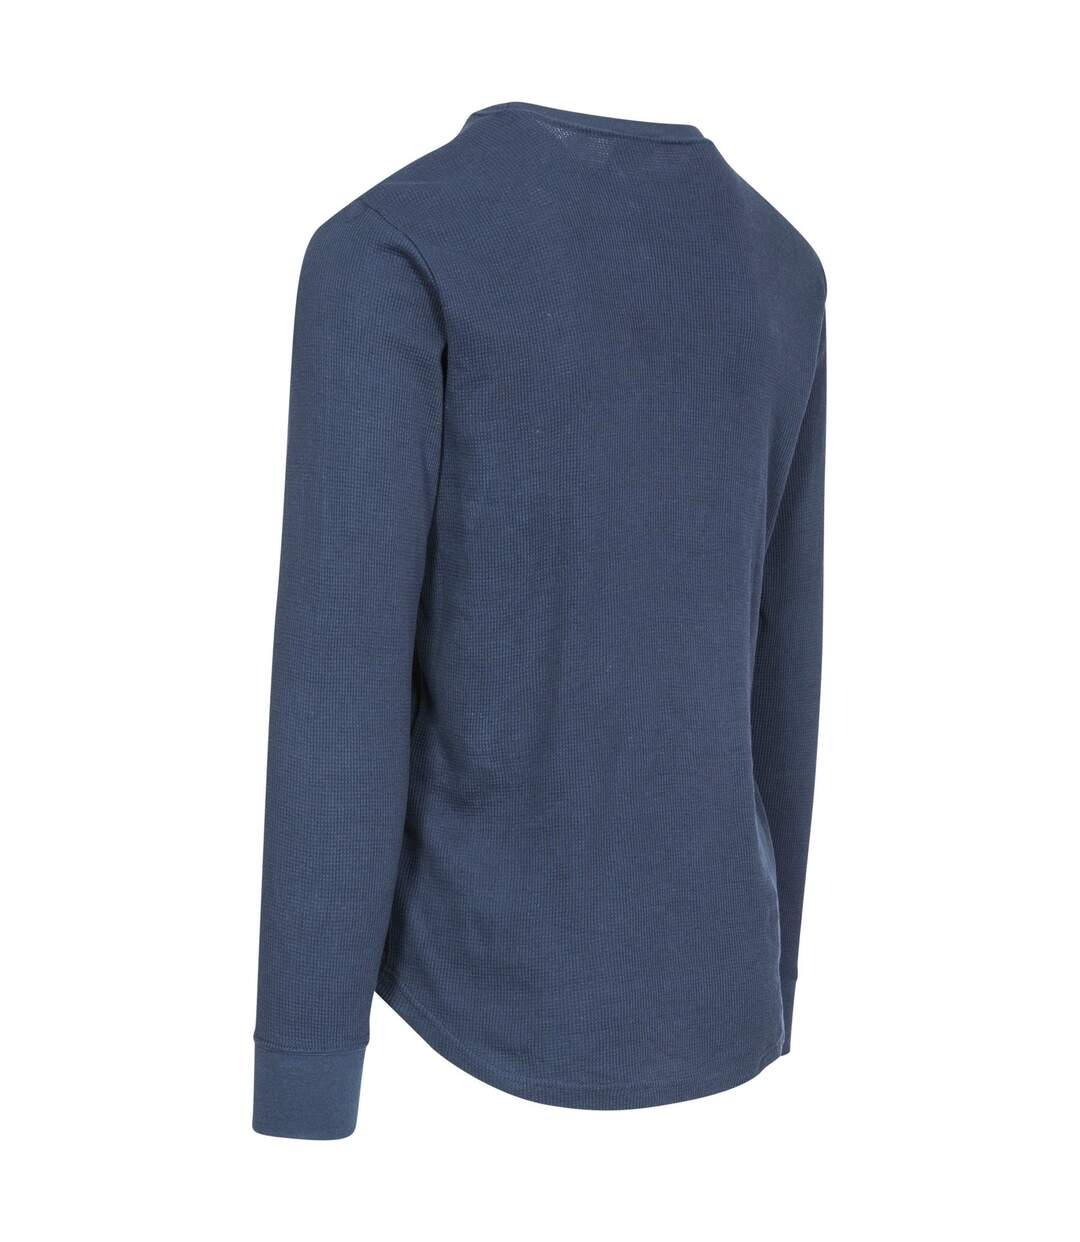 Trespass Adults Unisex Unify Thermal Base Layer Top (Navy) - UTTP3854